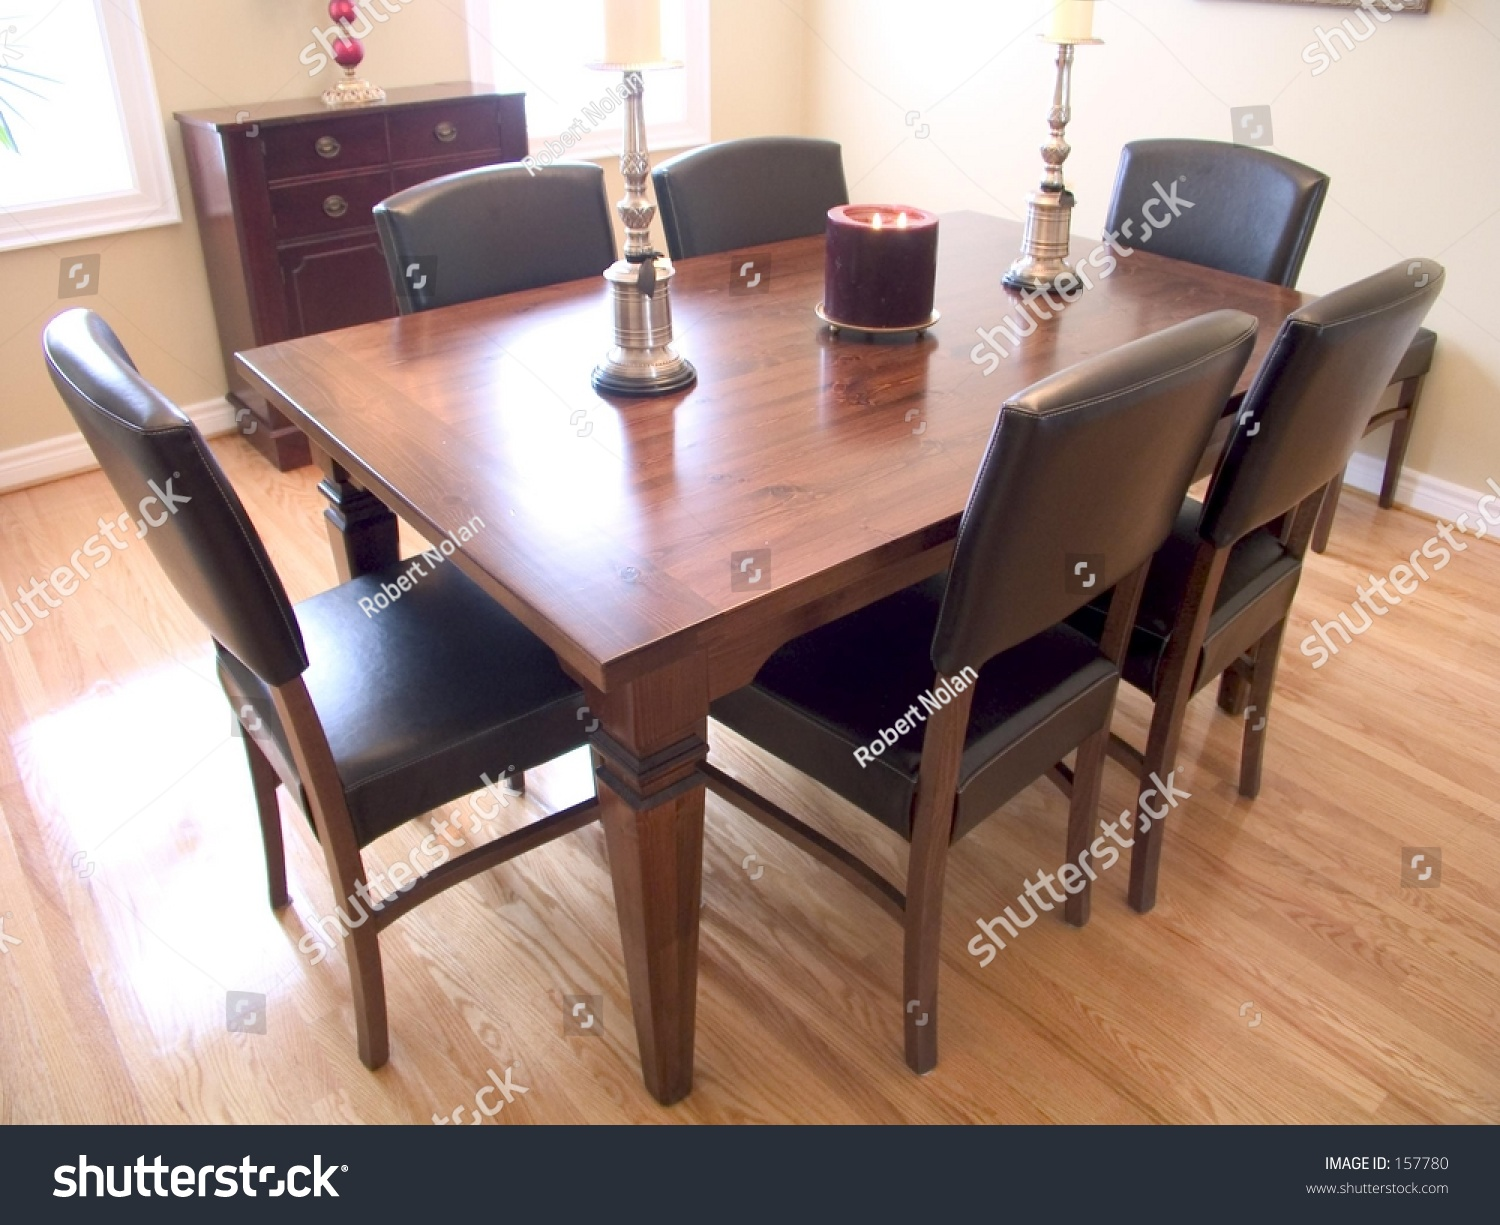 stock photo dining room with dark wood table six chairs candelabra and two windows with a natural wood floor